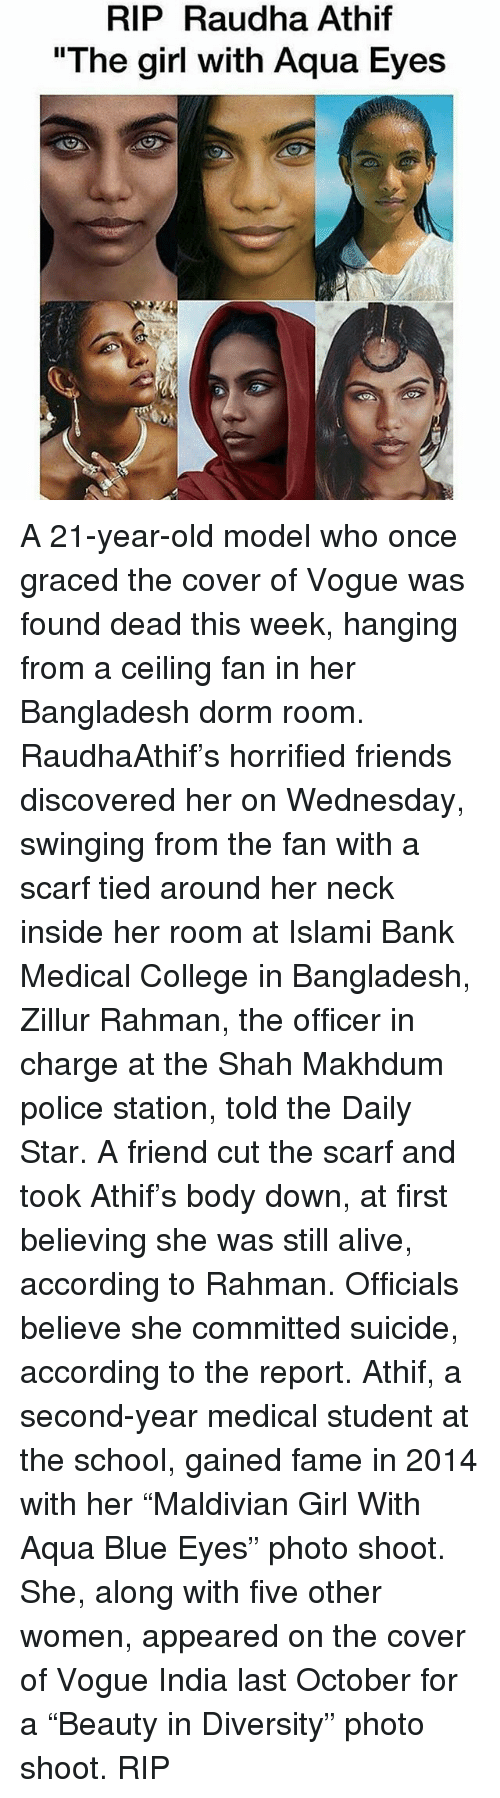 """Alive, College, and Friends: RIP Raudha Athif  """"The girl with Aqua Eyes A 21-year-old model who once graced the cover of Vogue was found dead this week, hanging from a ceiling fan in her Bangladesh dorm room. RaudhaAthif's horrified friends discovered her on Wednesday, swinging from the fan with a scarf tied around her neck inside her room at Islami Bank Medical College in Bangladesh, Zillur Rahman, the officer in charge at the Shah Makhdum police station, told the Daily Star. A friend cut the scarf and took Athif's body down, at first believing she was still alive, according to Rahman. Officials believe she committed suicide, according to the report. Athif, a second-year medical student at the school, gained fame in 2014 with her """"Maldivian Girl With Aqua Blue Eyes"""" photo shoot. She, along with five other women, appeared on the cover of Vogue India last October for a """"Beauty in Diversity"""" photo shoot. RIP"""